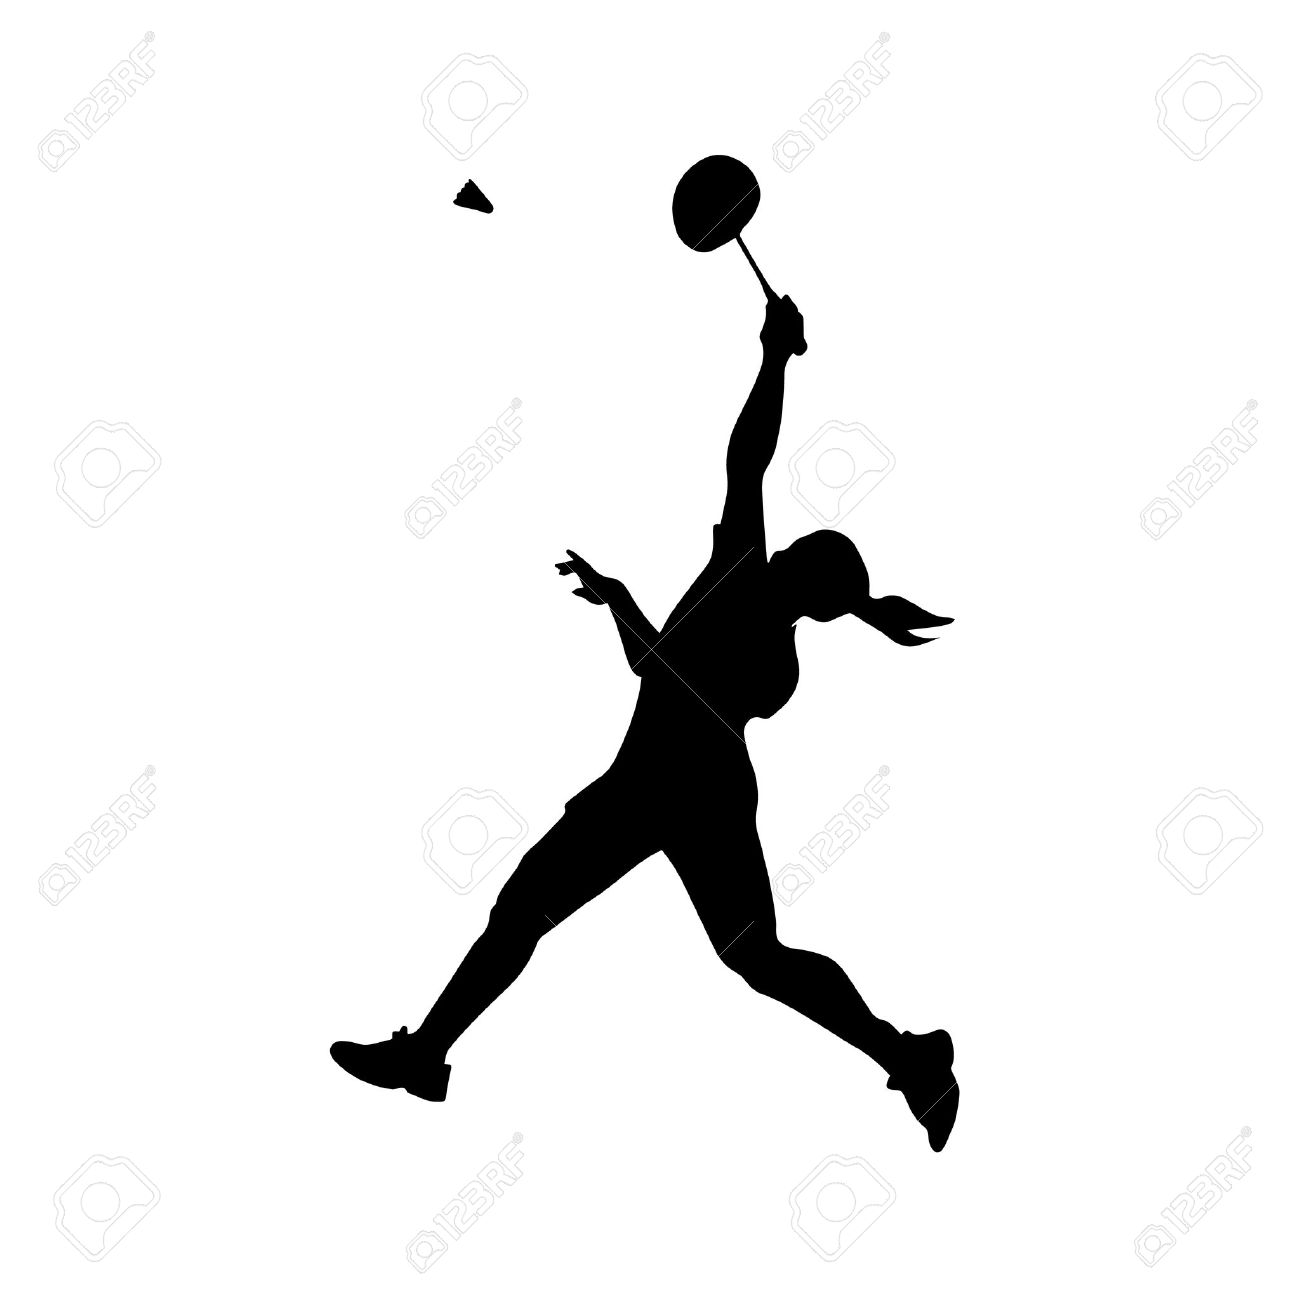 Silhouette of professional female badminton player. Vector illustration - 48879559